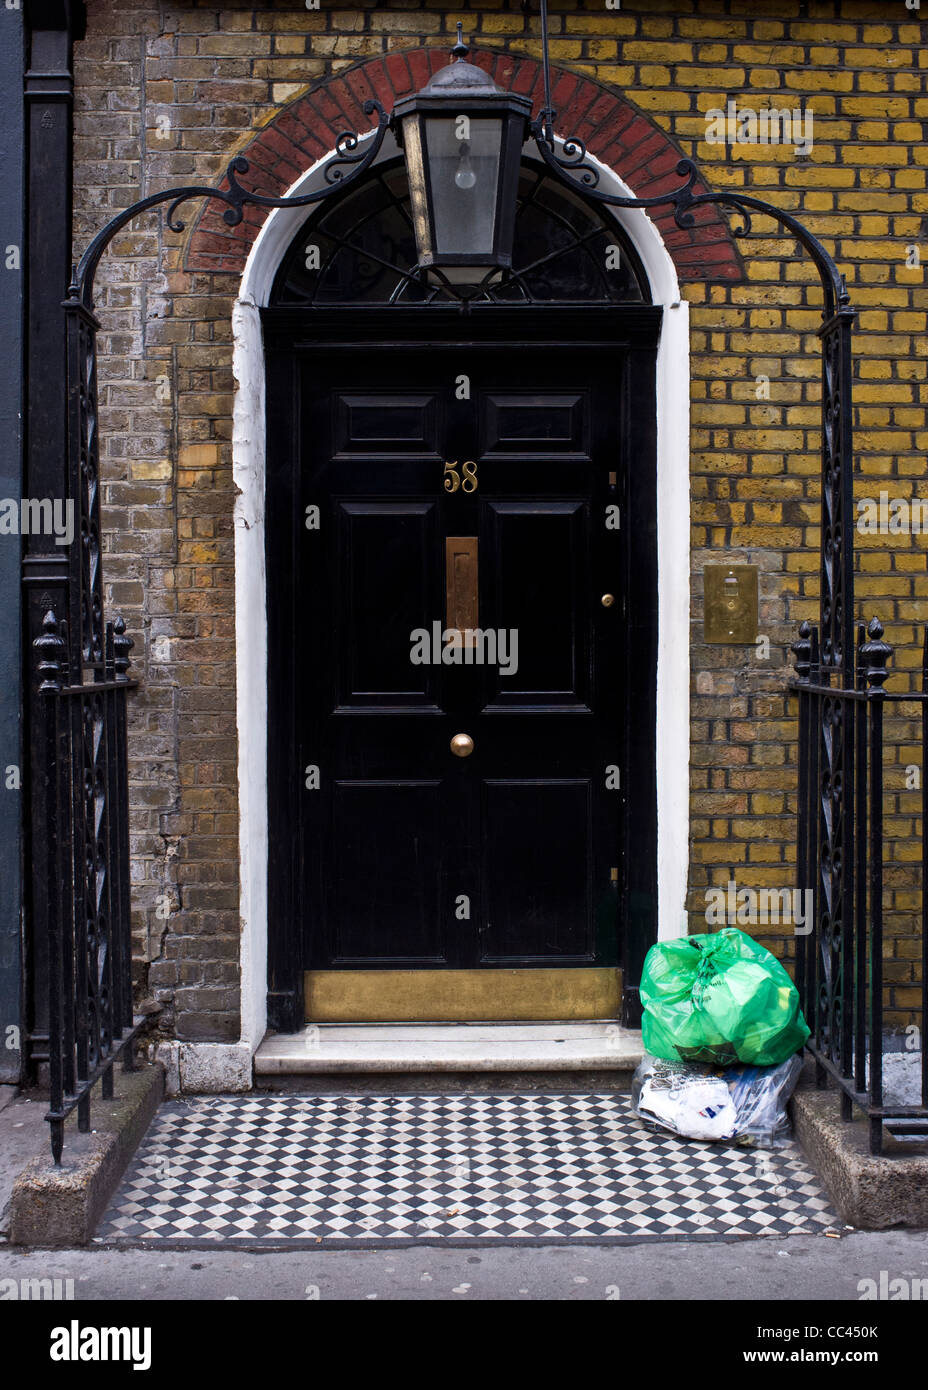 Black front door with wrought iron archway and rubbish - Stock Image